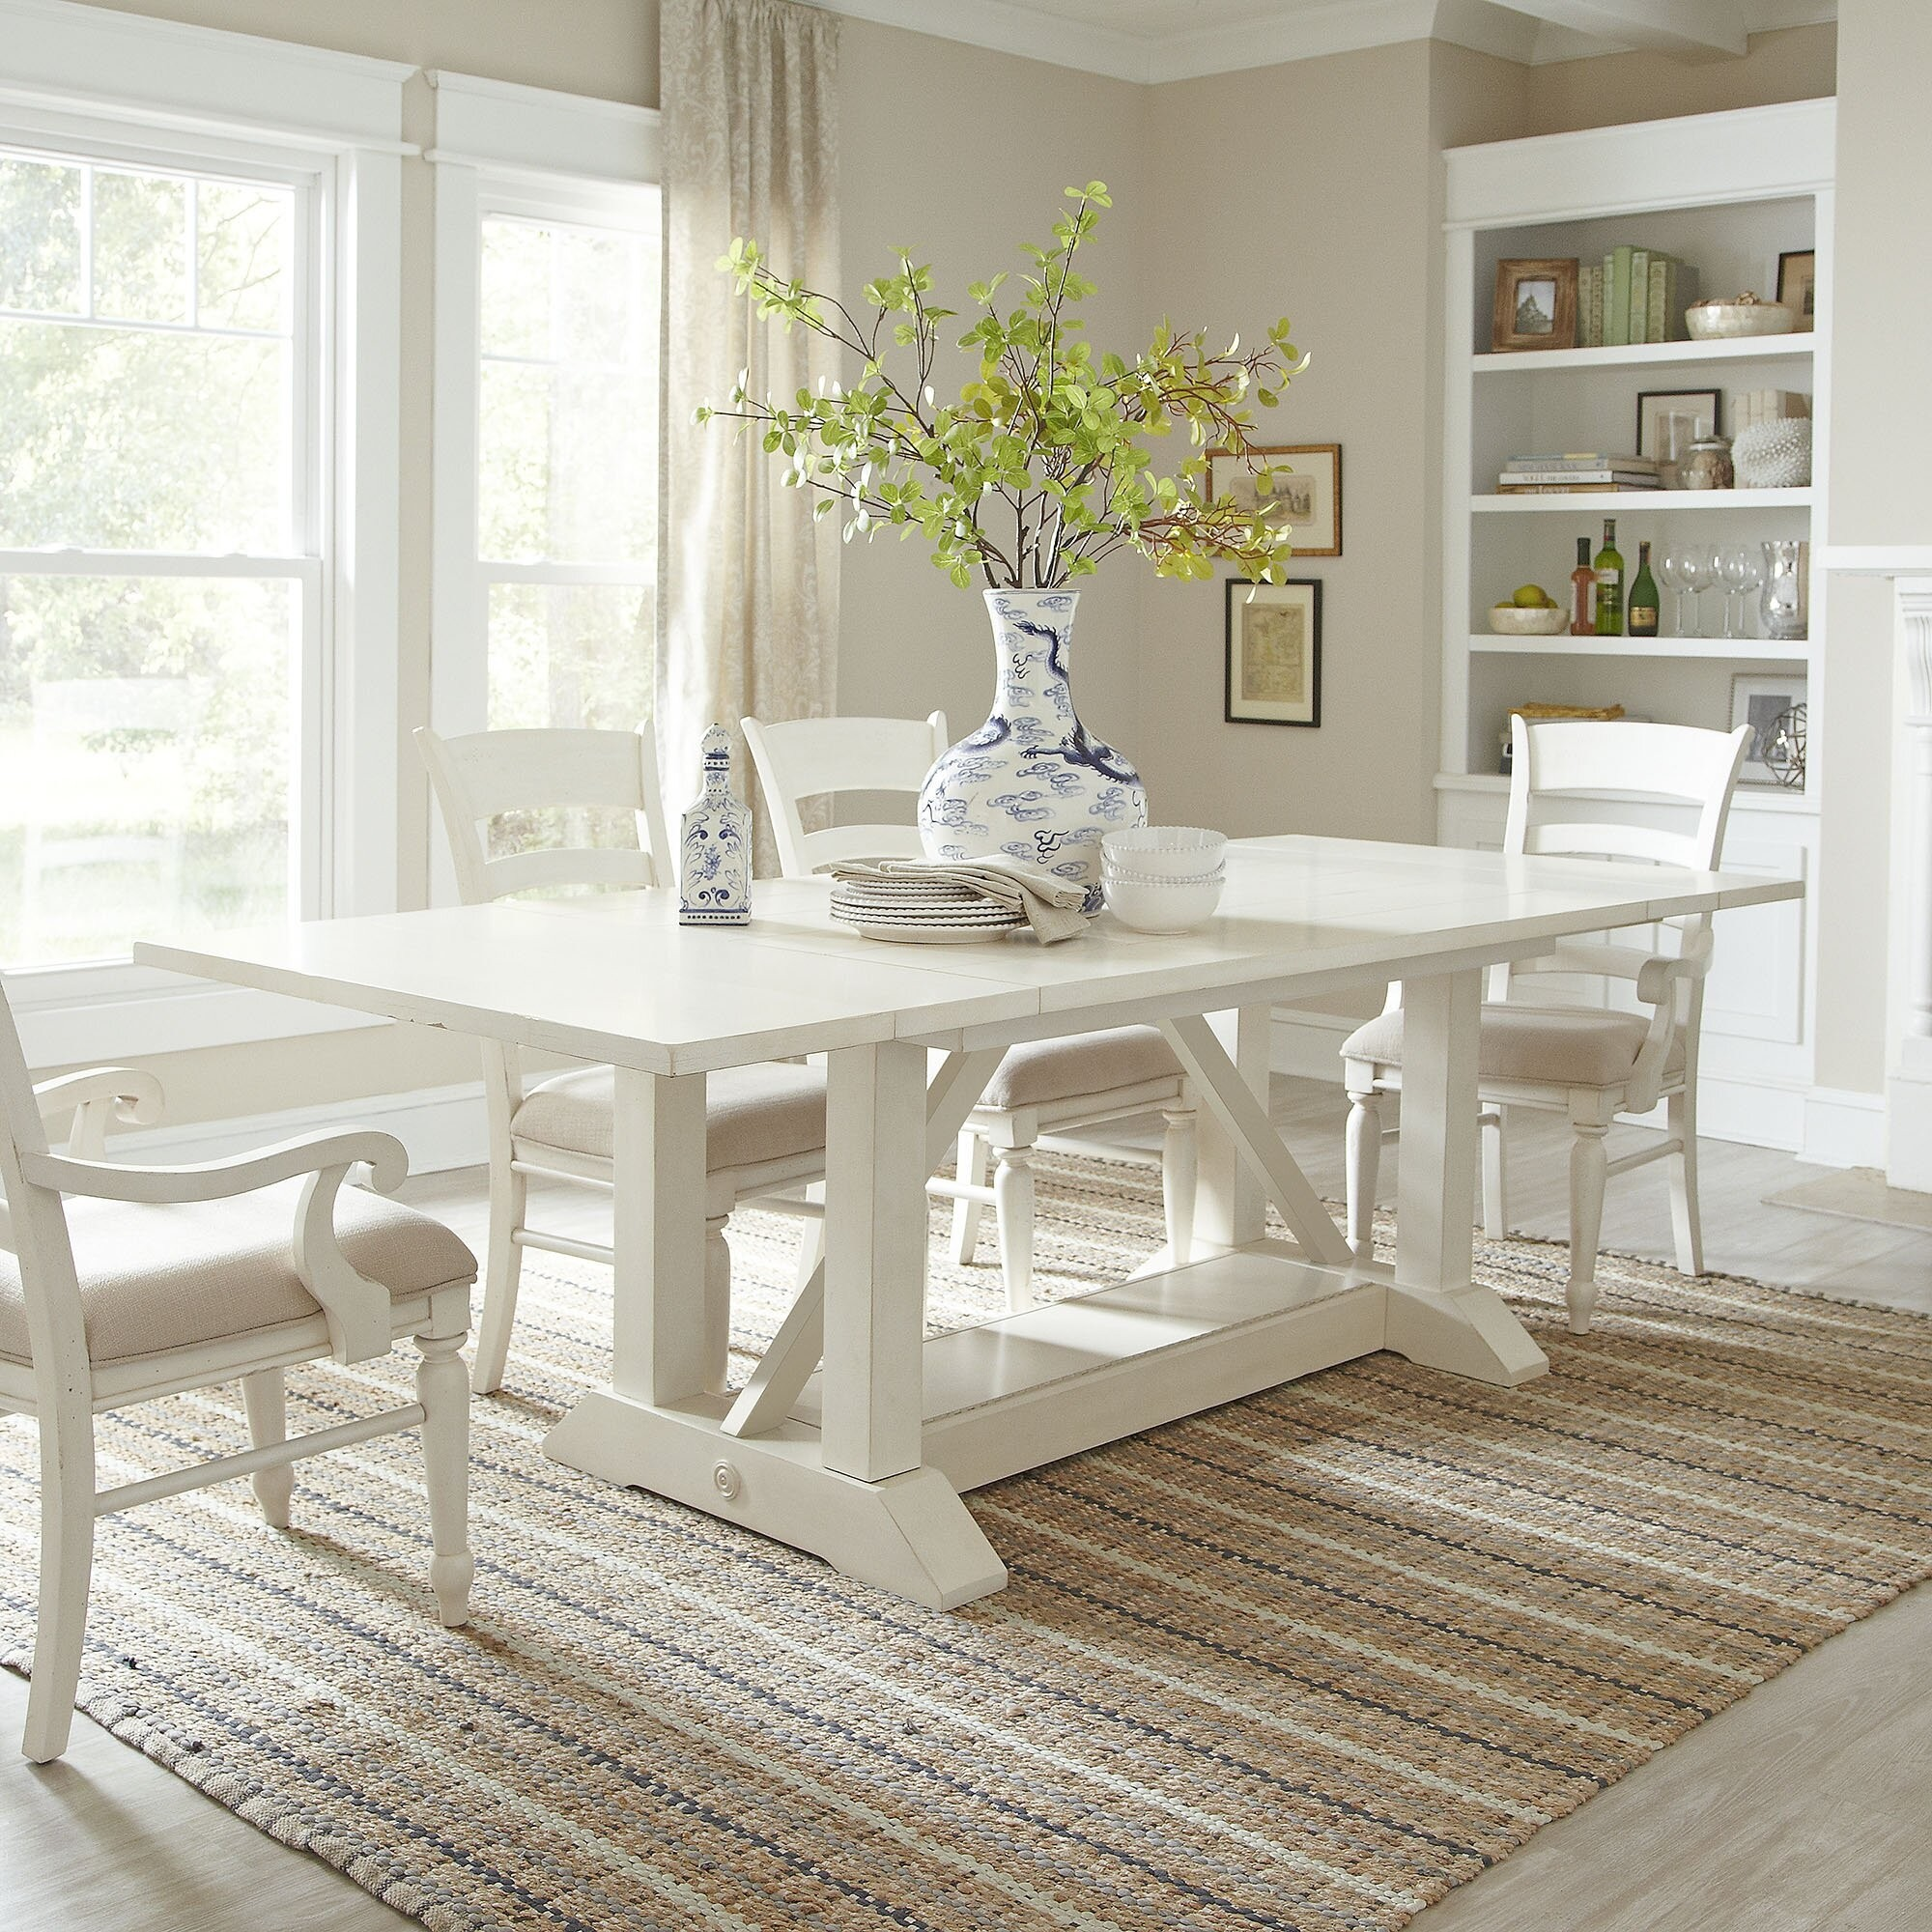 Foter & White Distressed Dining Table - Ideas on Foter